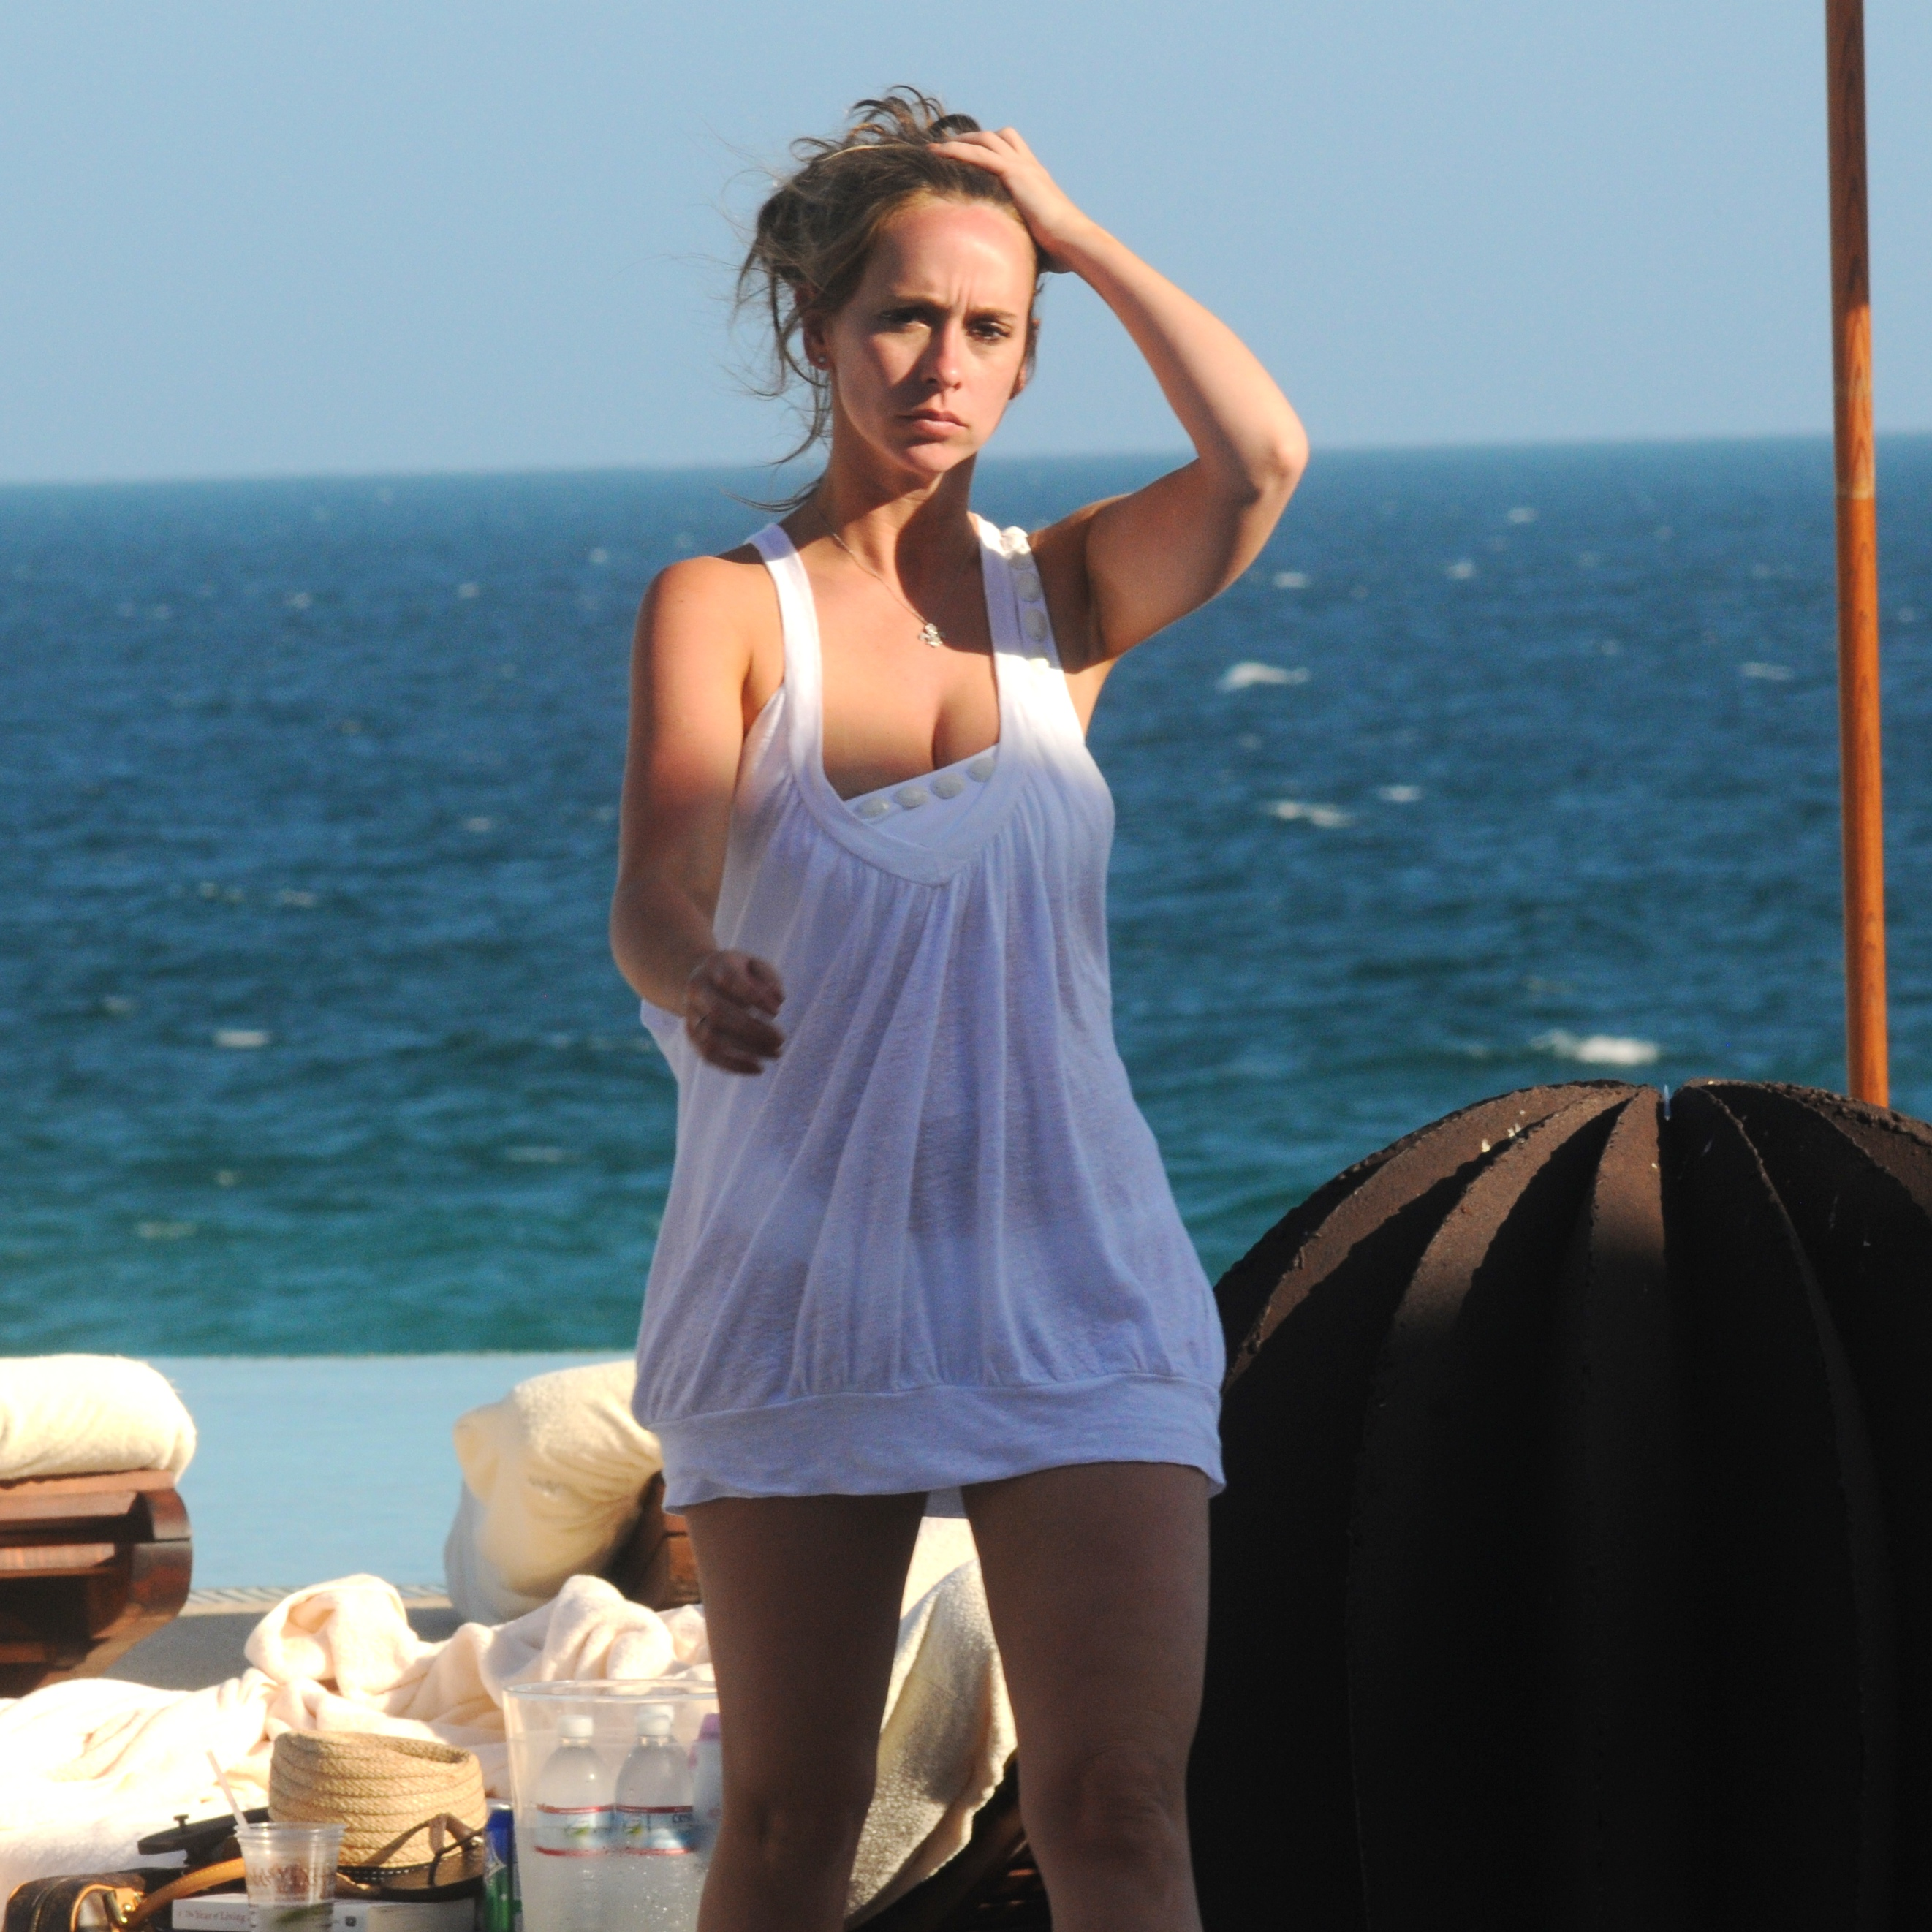 97245_Jennifer_Love_Hewitt_-_poolside_at_her_hotel_in_Mexico_-_March_24_02_122_200lo.jpg